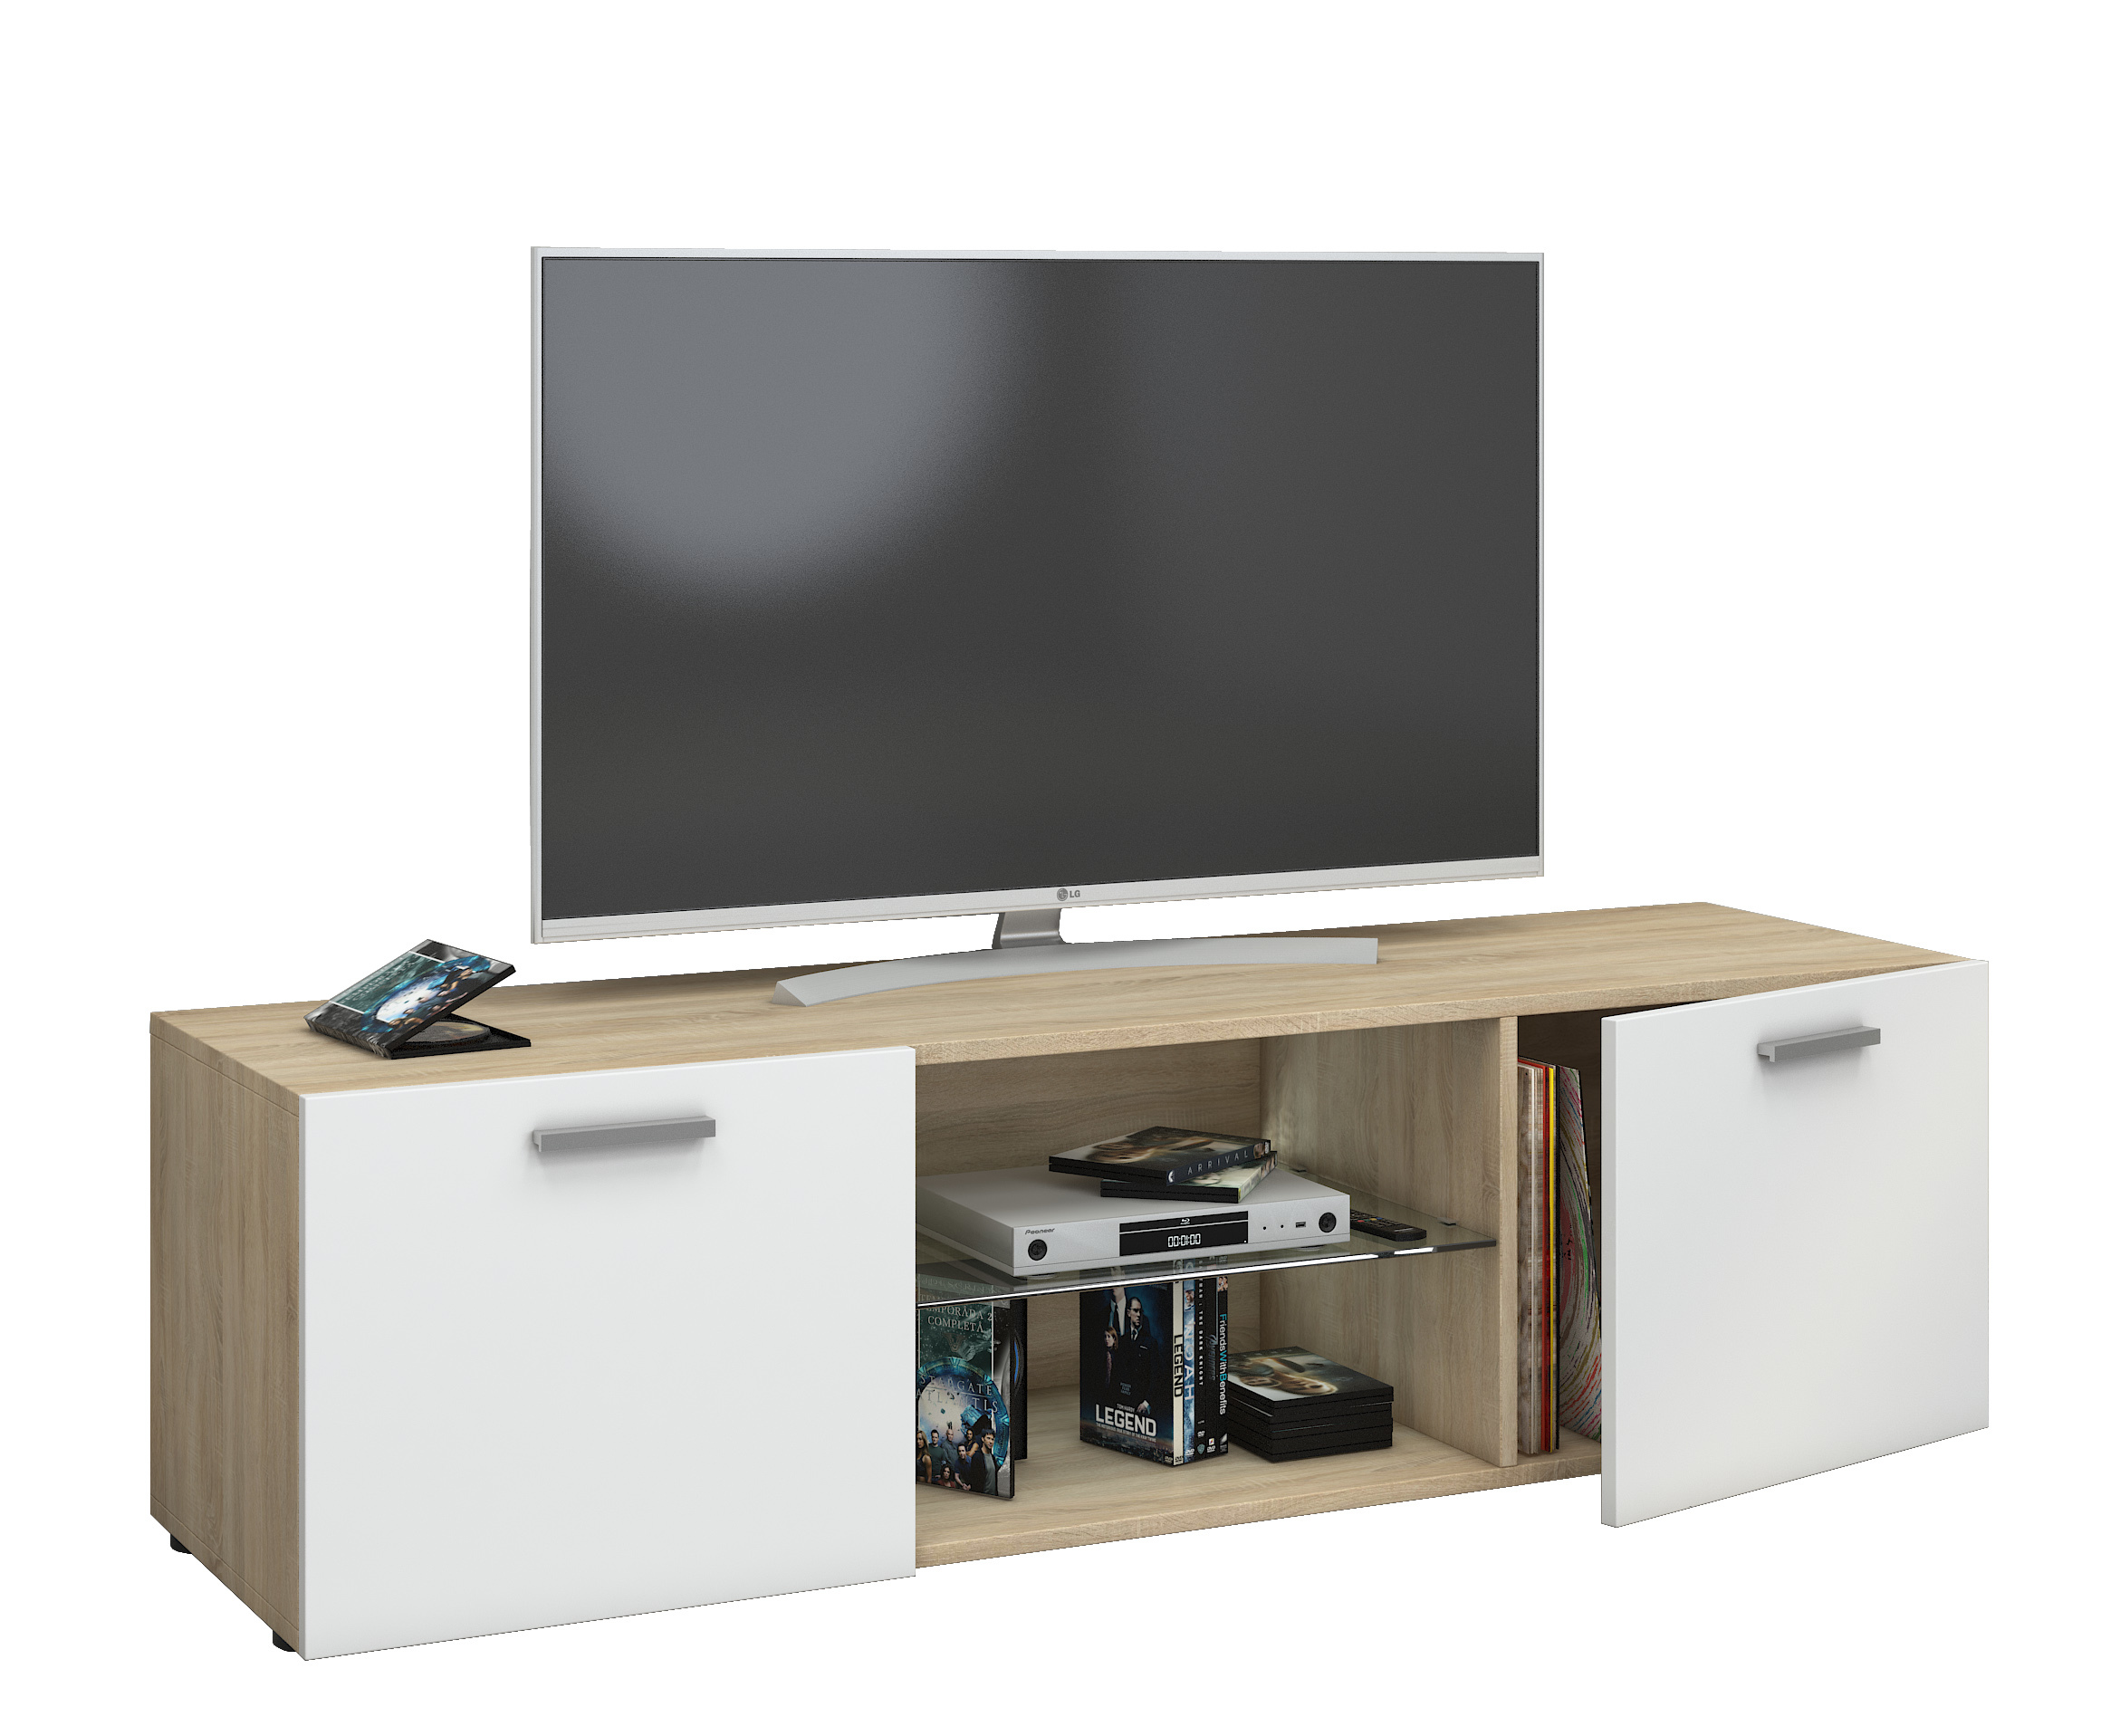 vcm gruppe vcm tv lowboard fernsehtisch schrank m bel tisch holz sideboard medien rack. Black Bedroom Furniture Sets. Home Design Ideas